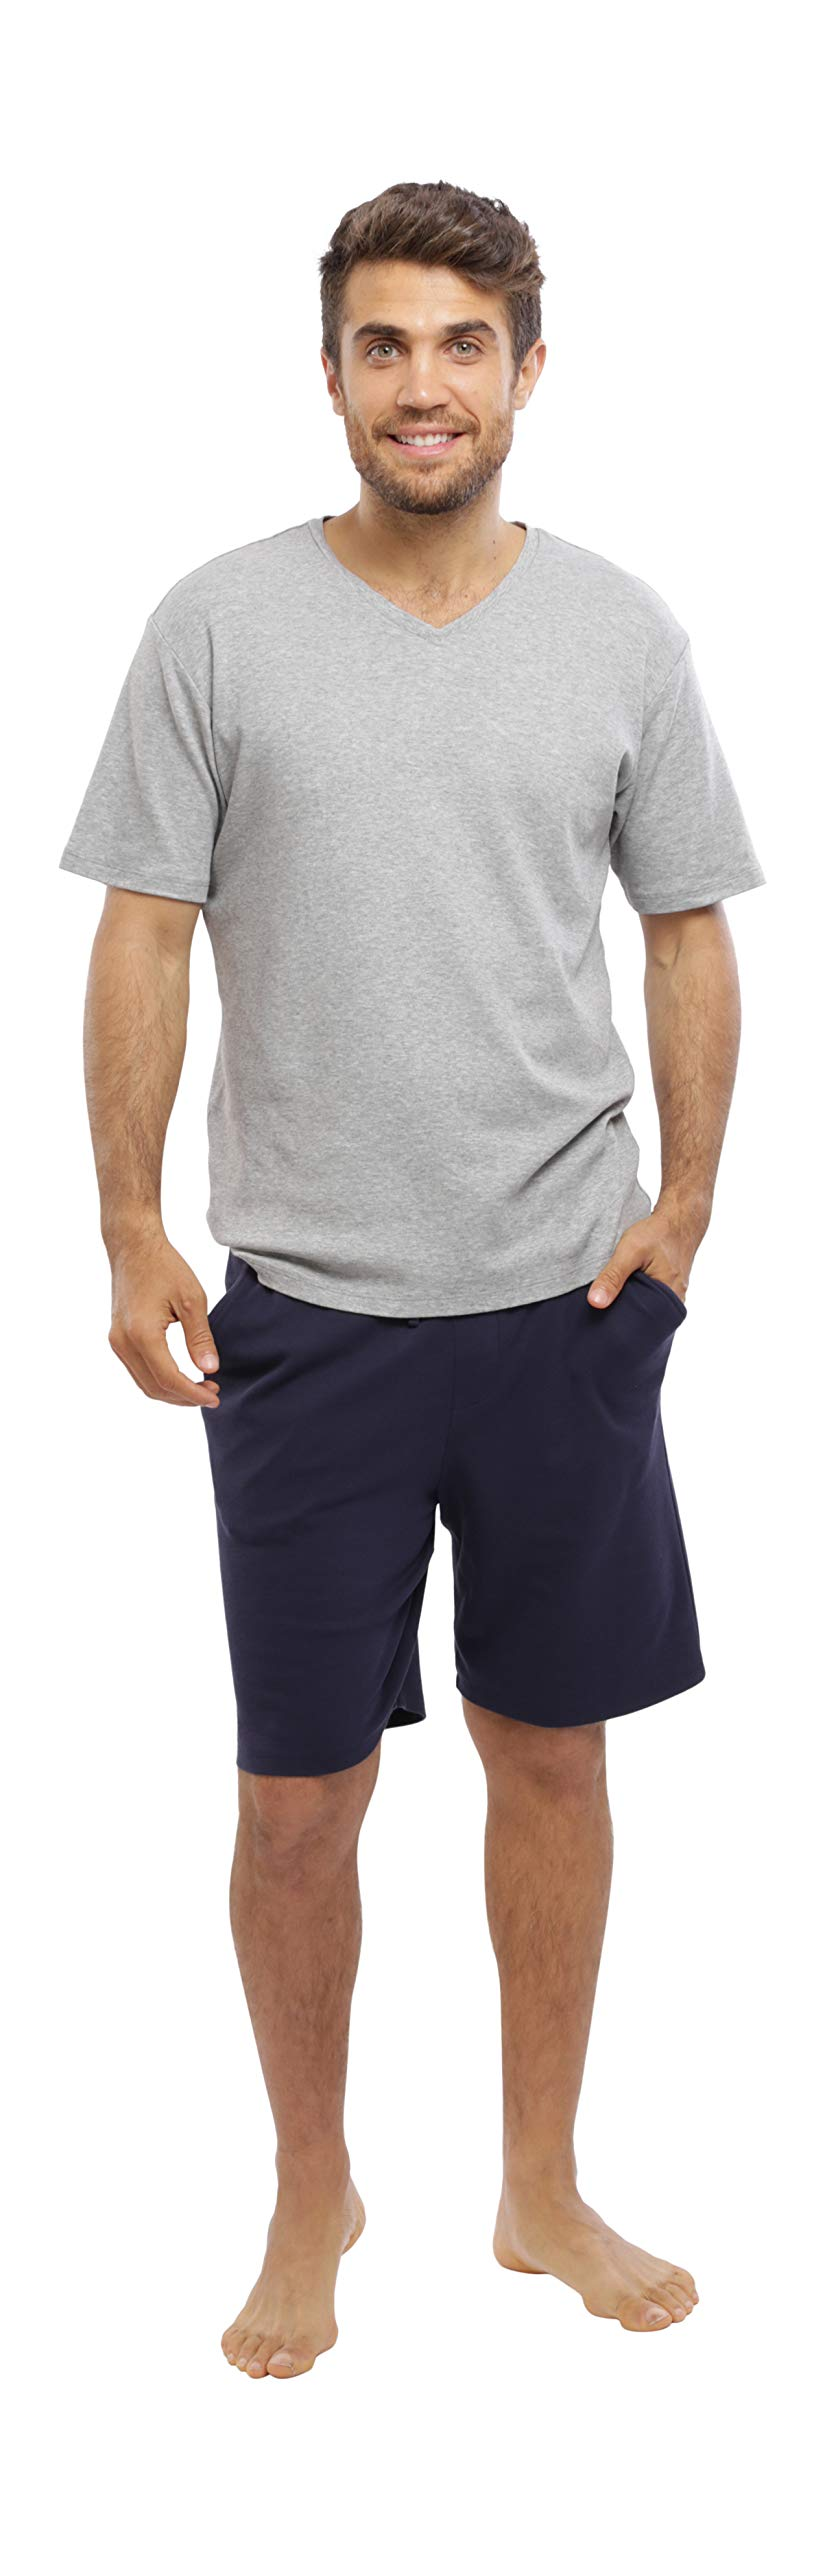 jijamas Incredibly Soft Pima Cotton Men's Pajamas Set - The Weekender Shorts in Navy and Heather Grey